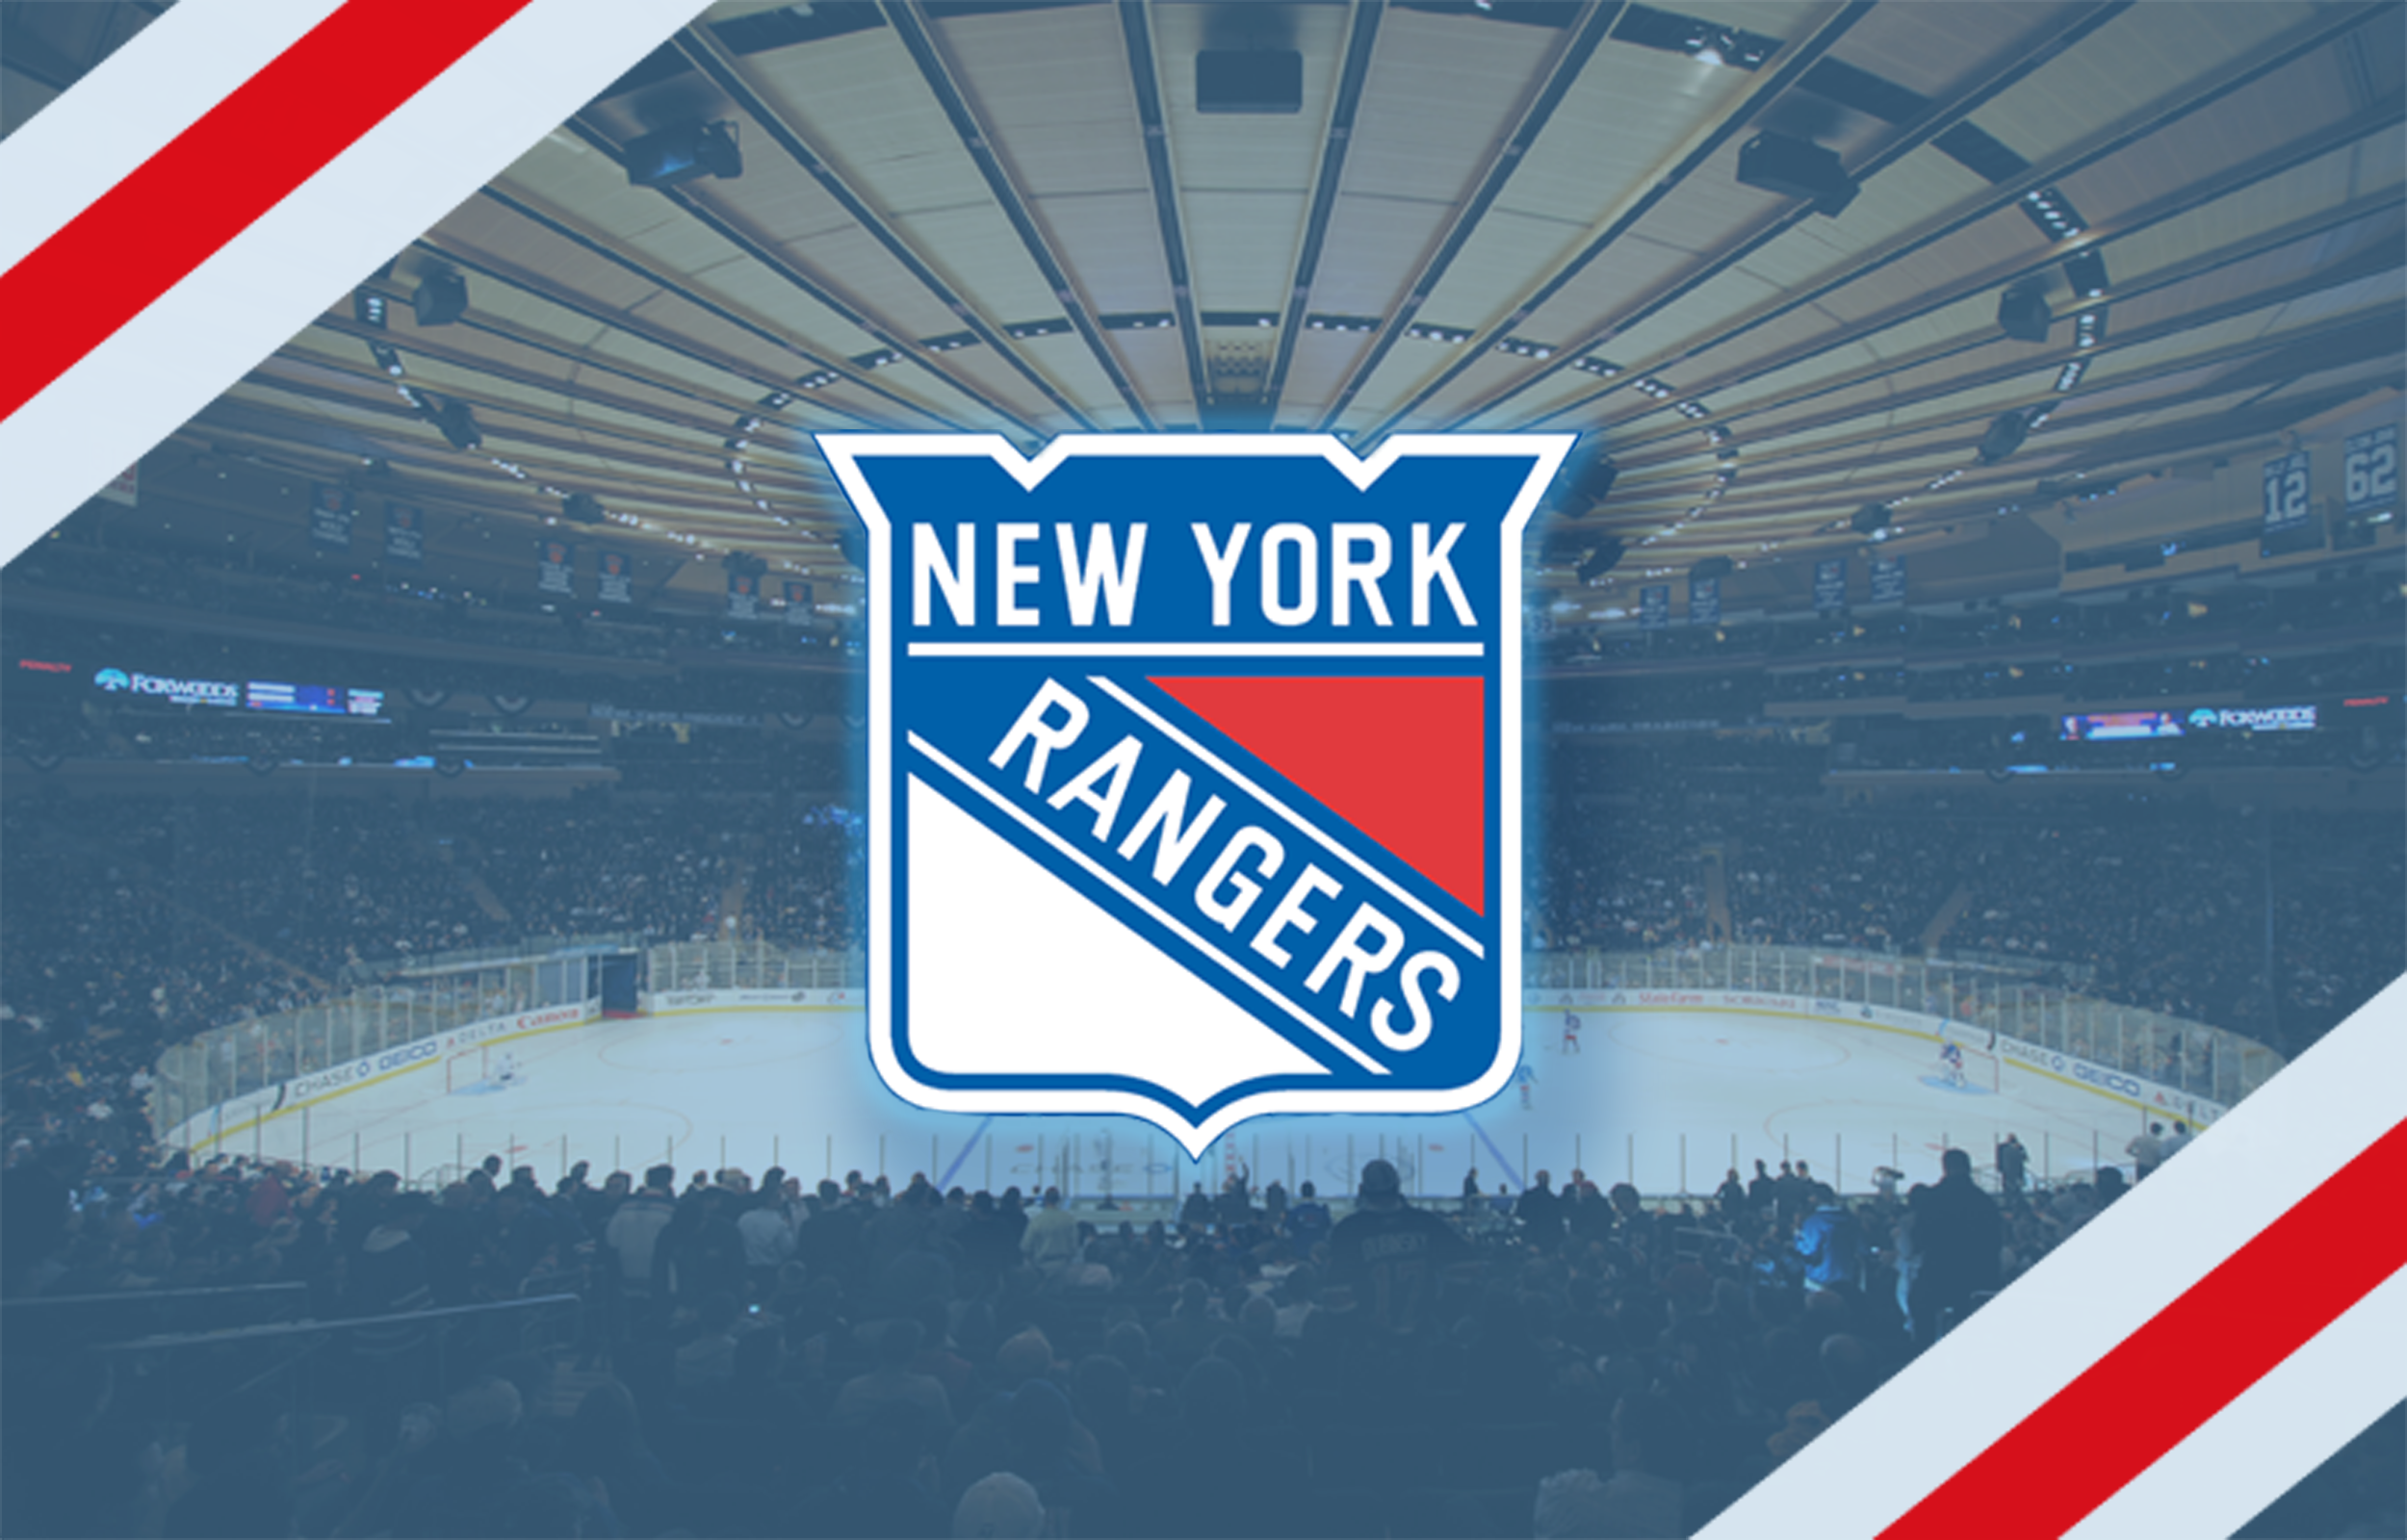 New York Rangers HD Wallpaper | Background Image | 2500x1600 | ID:983370 - Wallpaper Abyss